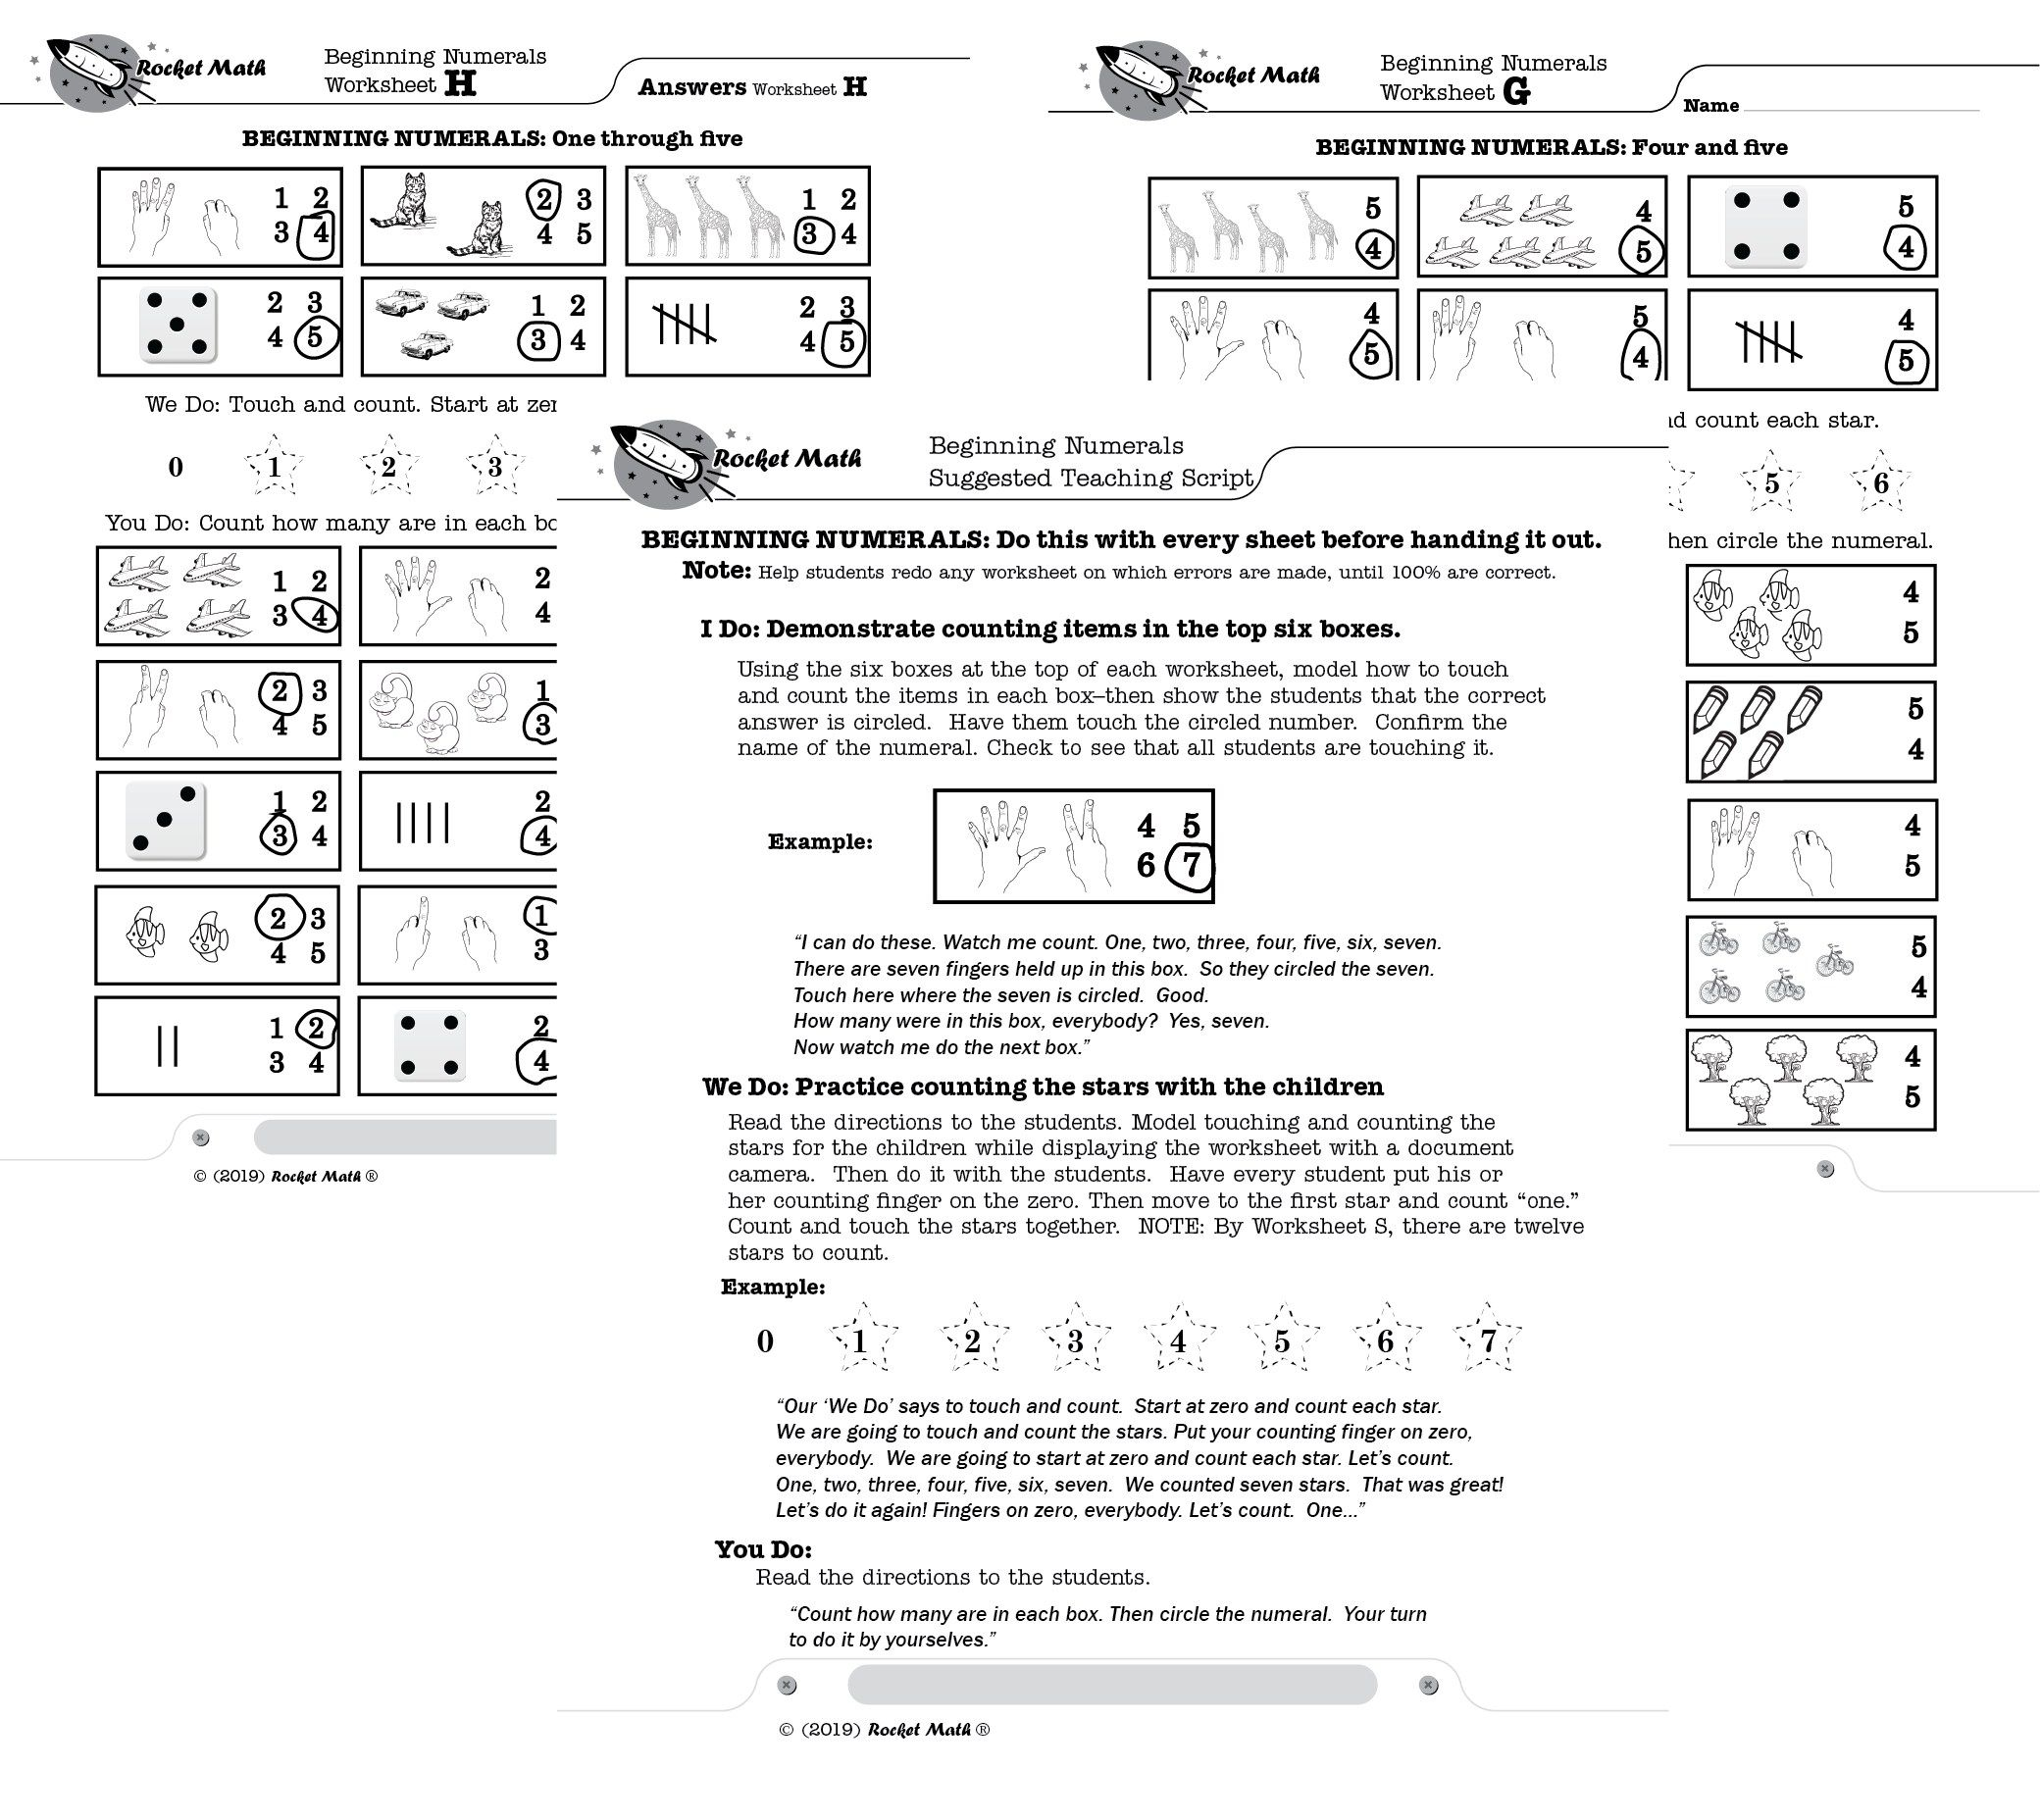 57 Multiplying Fractions And Whole Numbers Worksheet